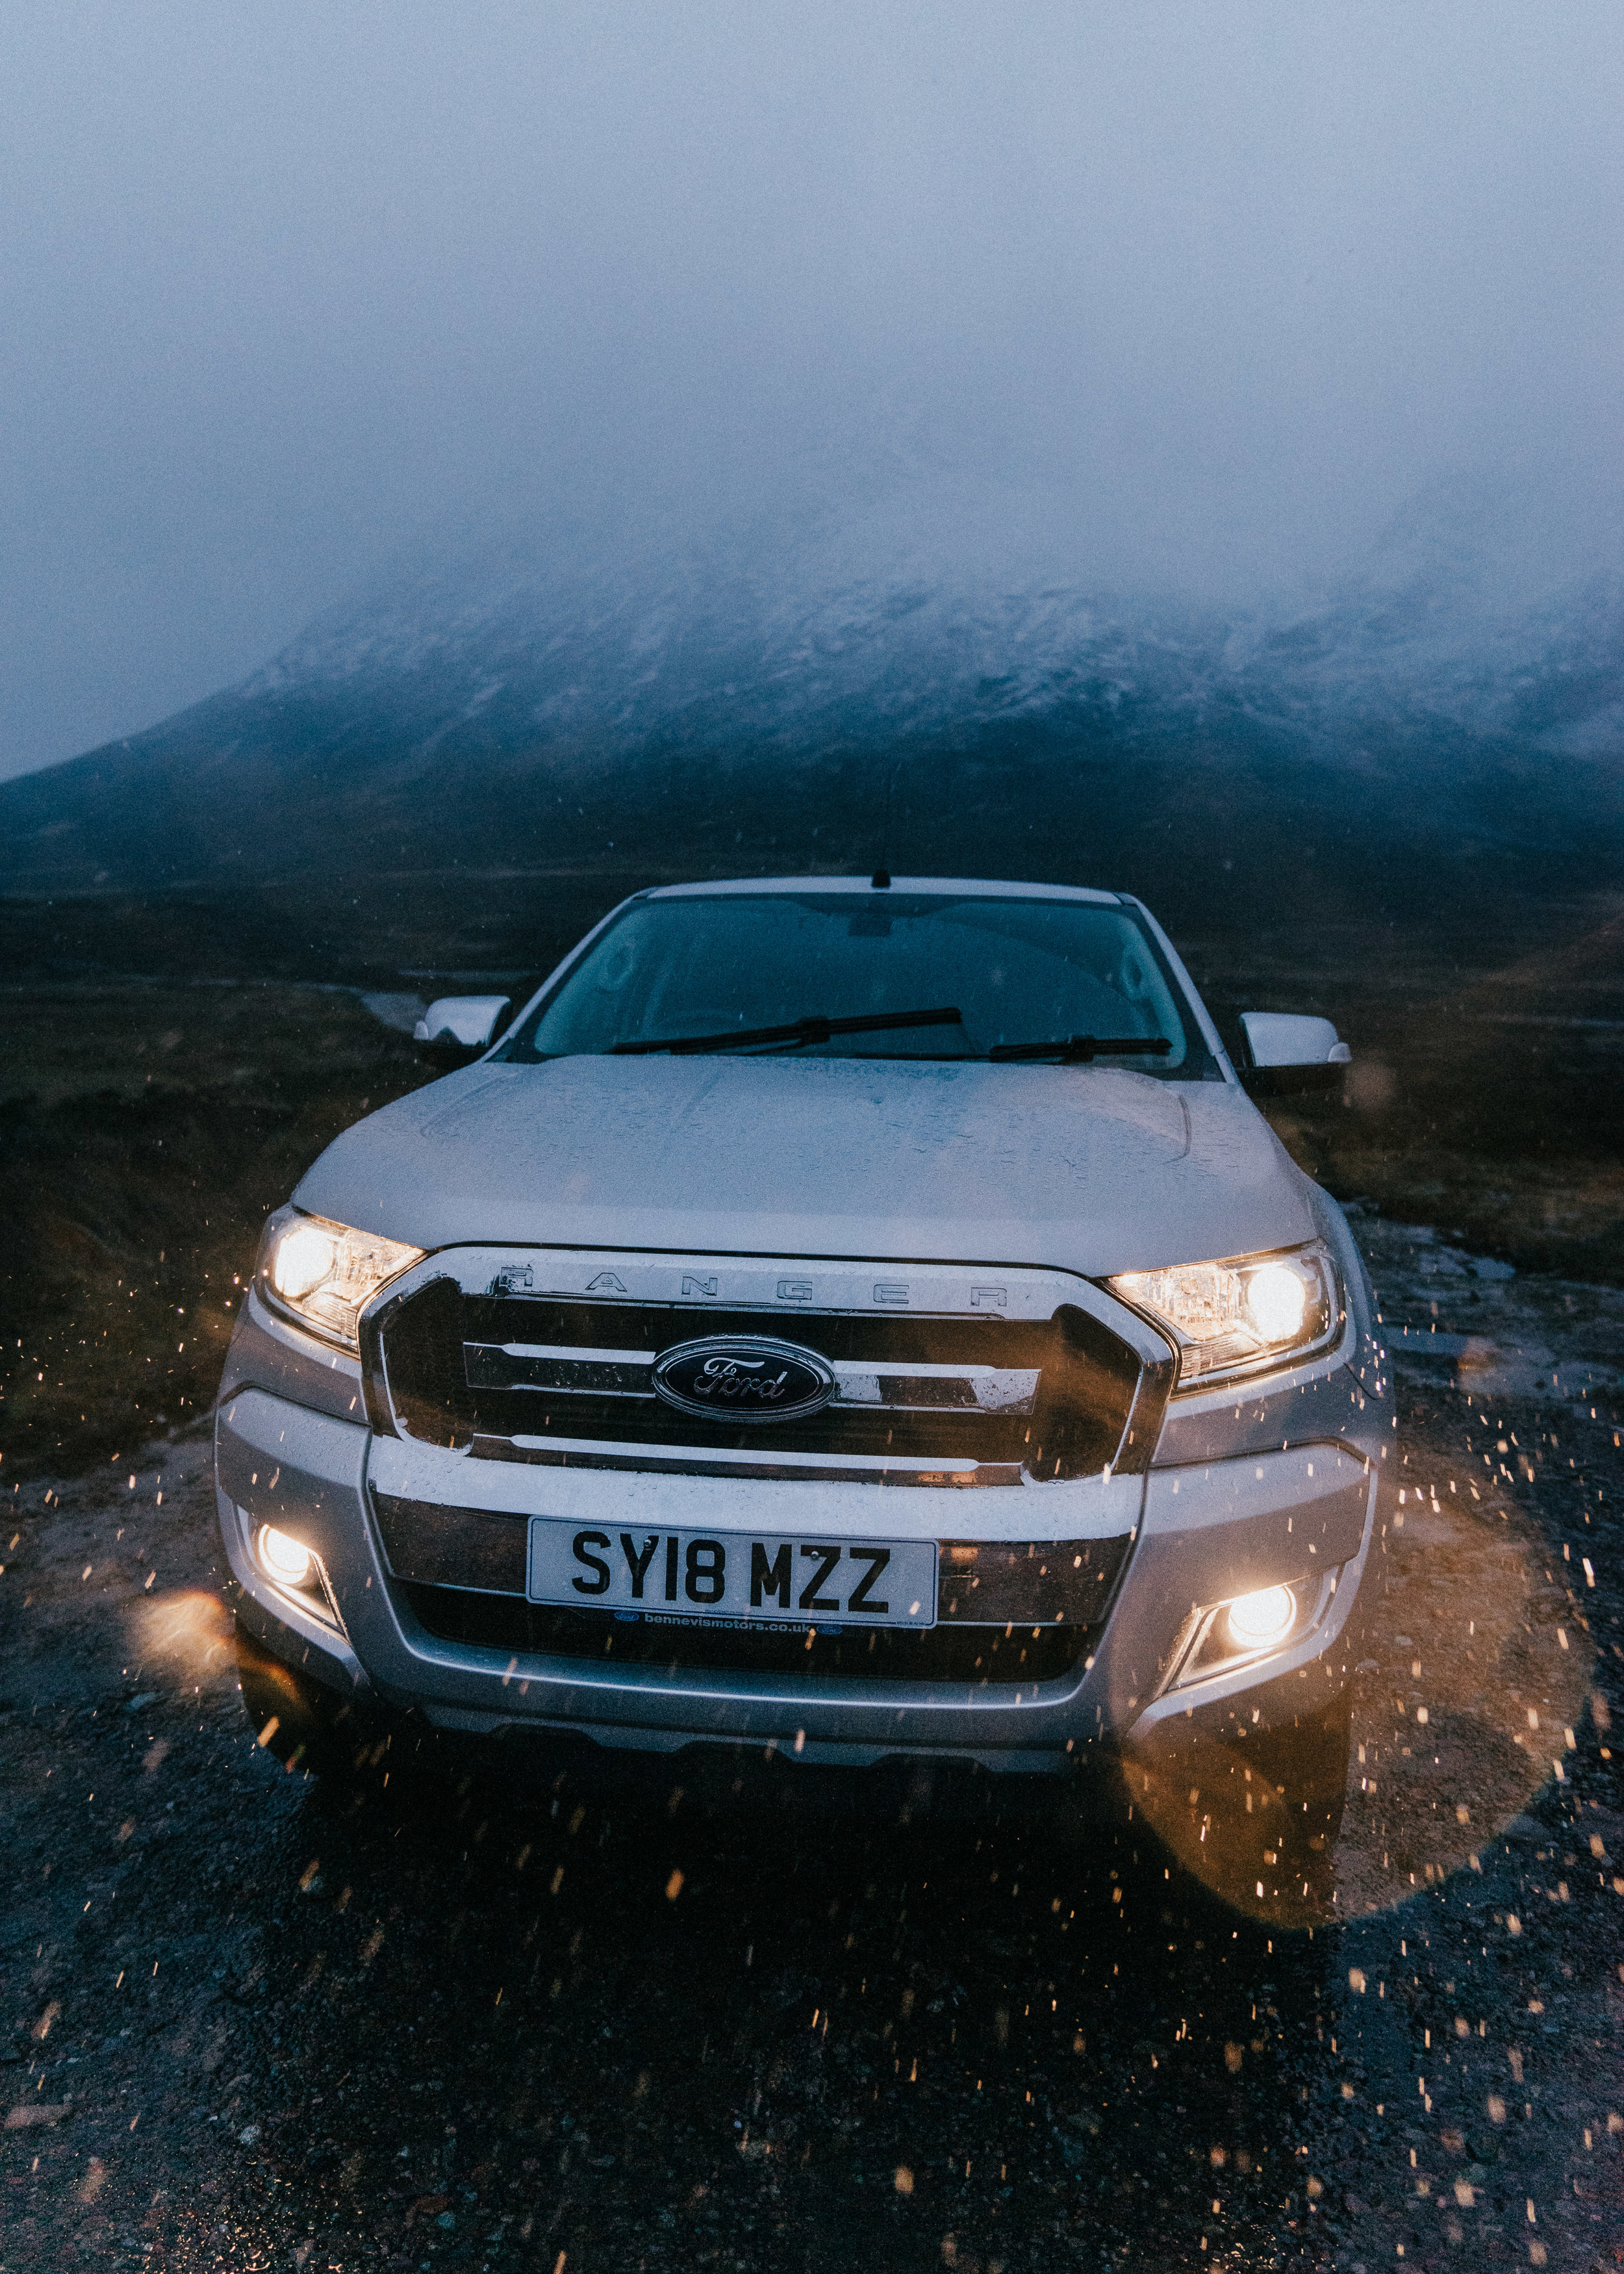 Ford Ranger Rainy Glencoe (1 of 1).jpg